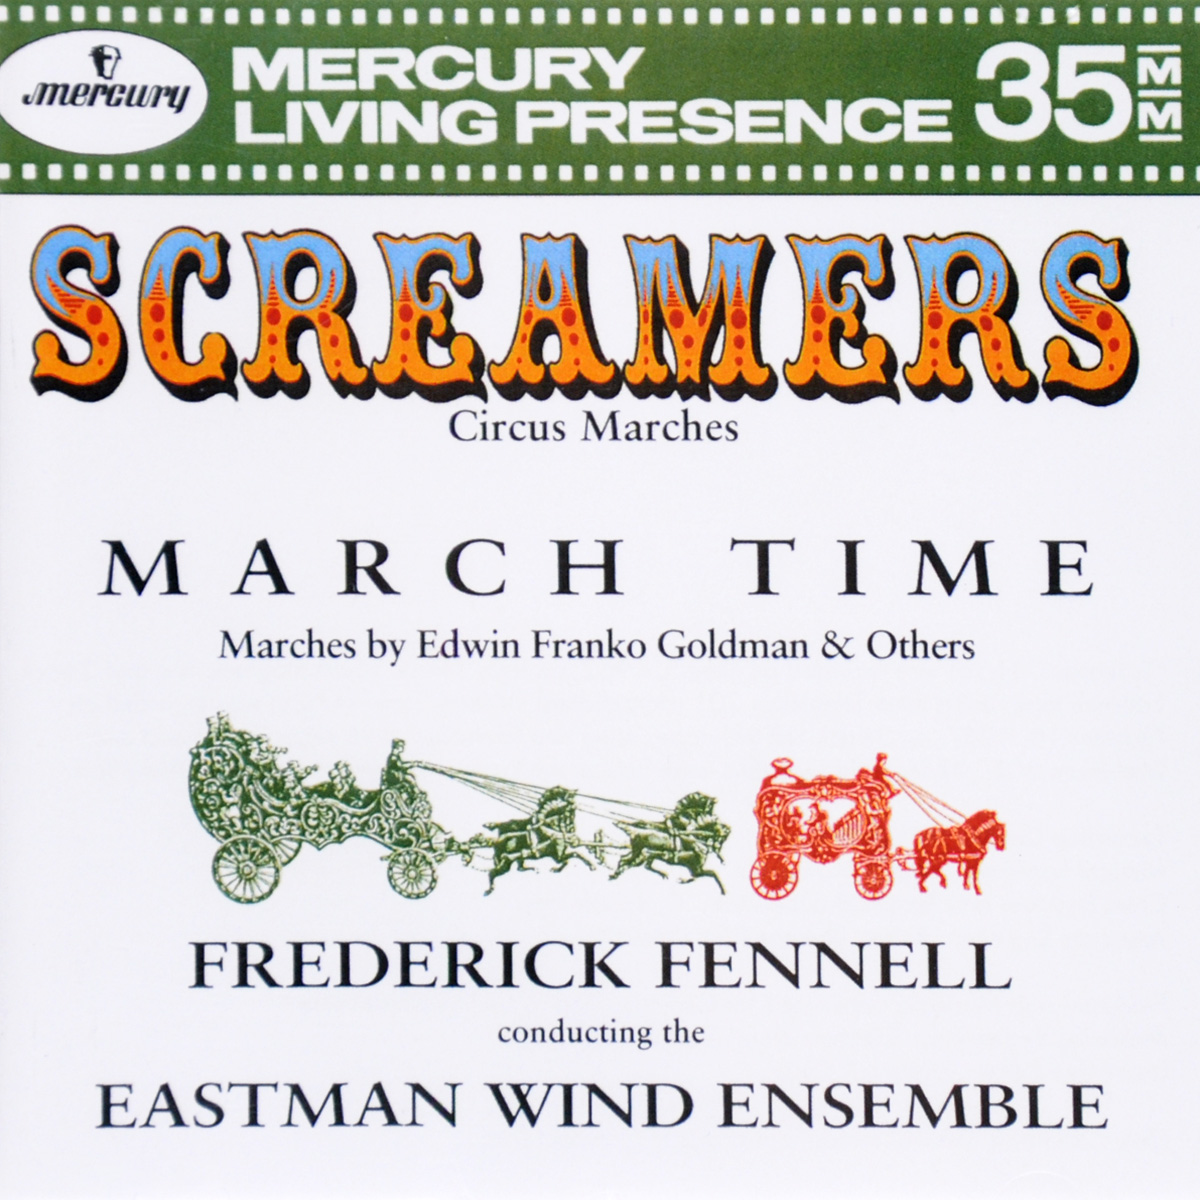 Фредерик Феннелл,Eastman Wind Ensemble Frederick Fennell. Screamers (Circus Marches) / March Time эван паркер electro acoustic ensemble evan parker electro acoustic ensemble the eleventh hour